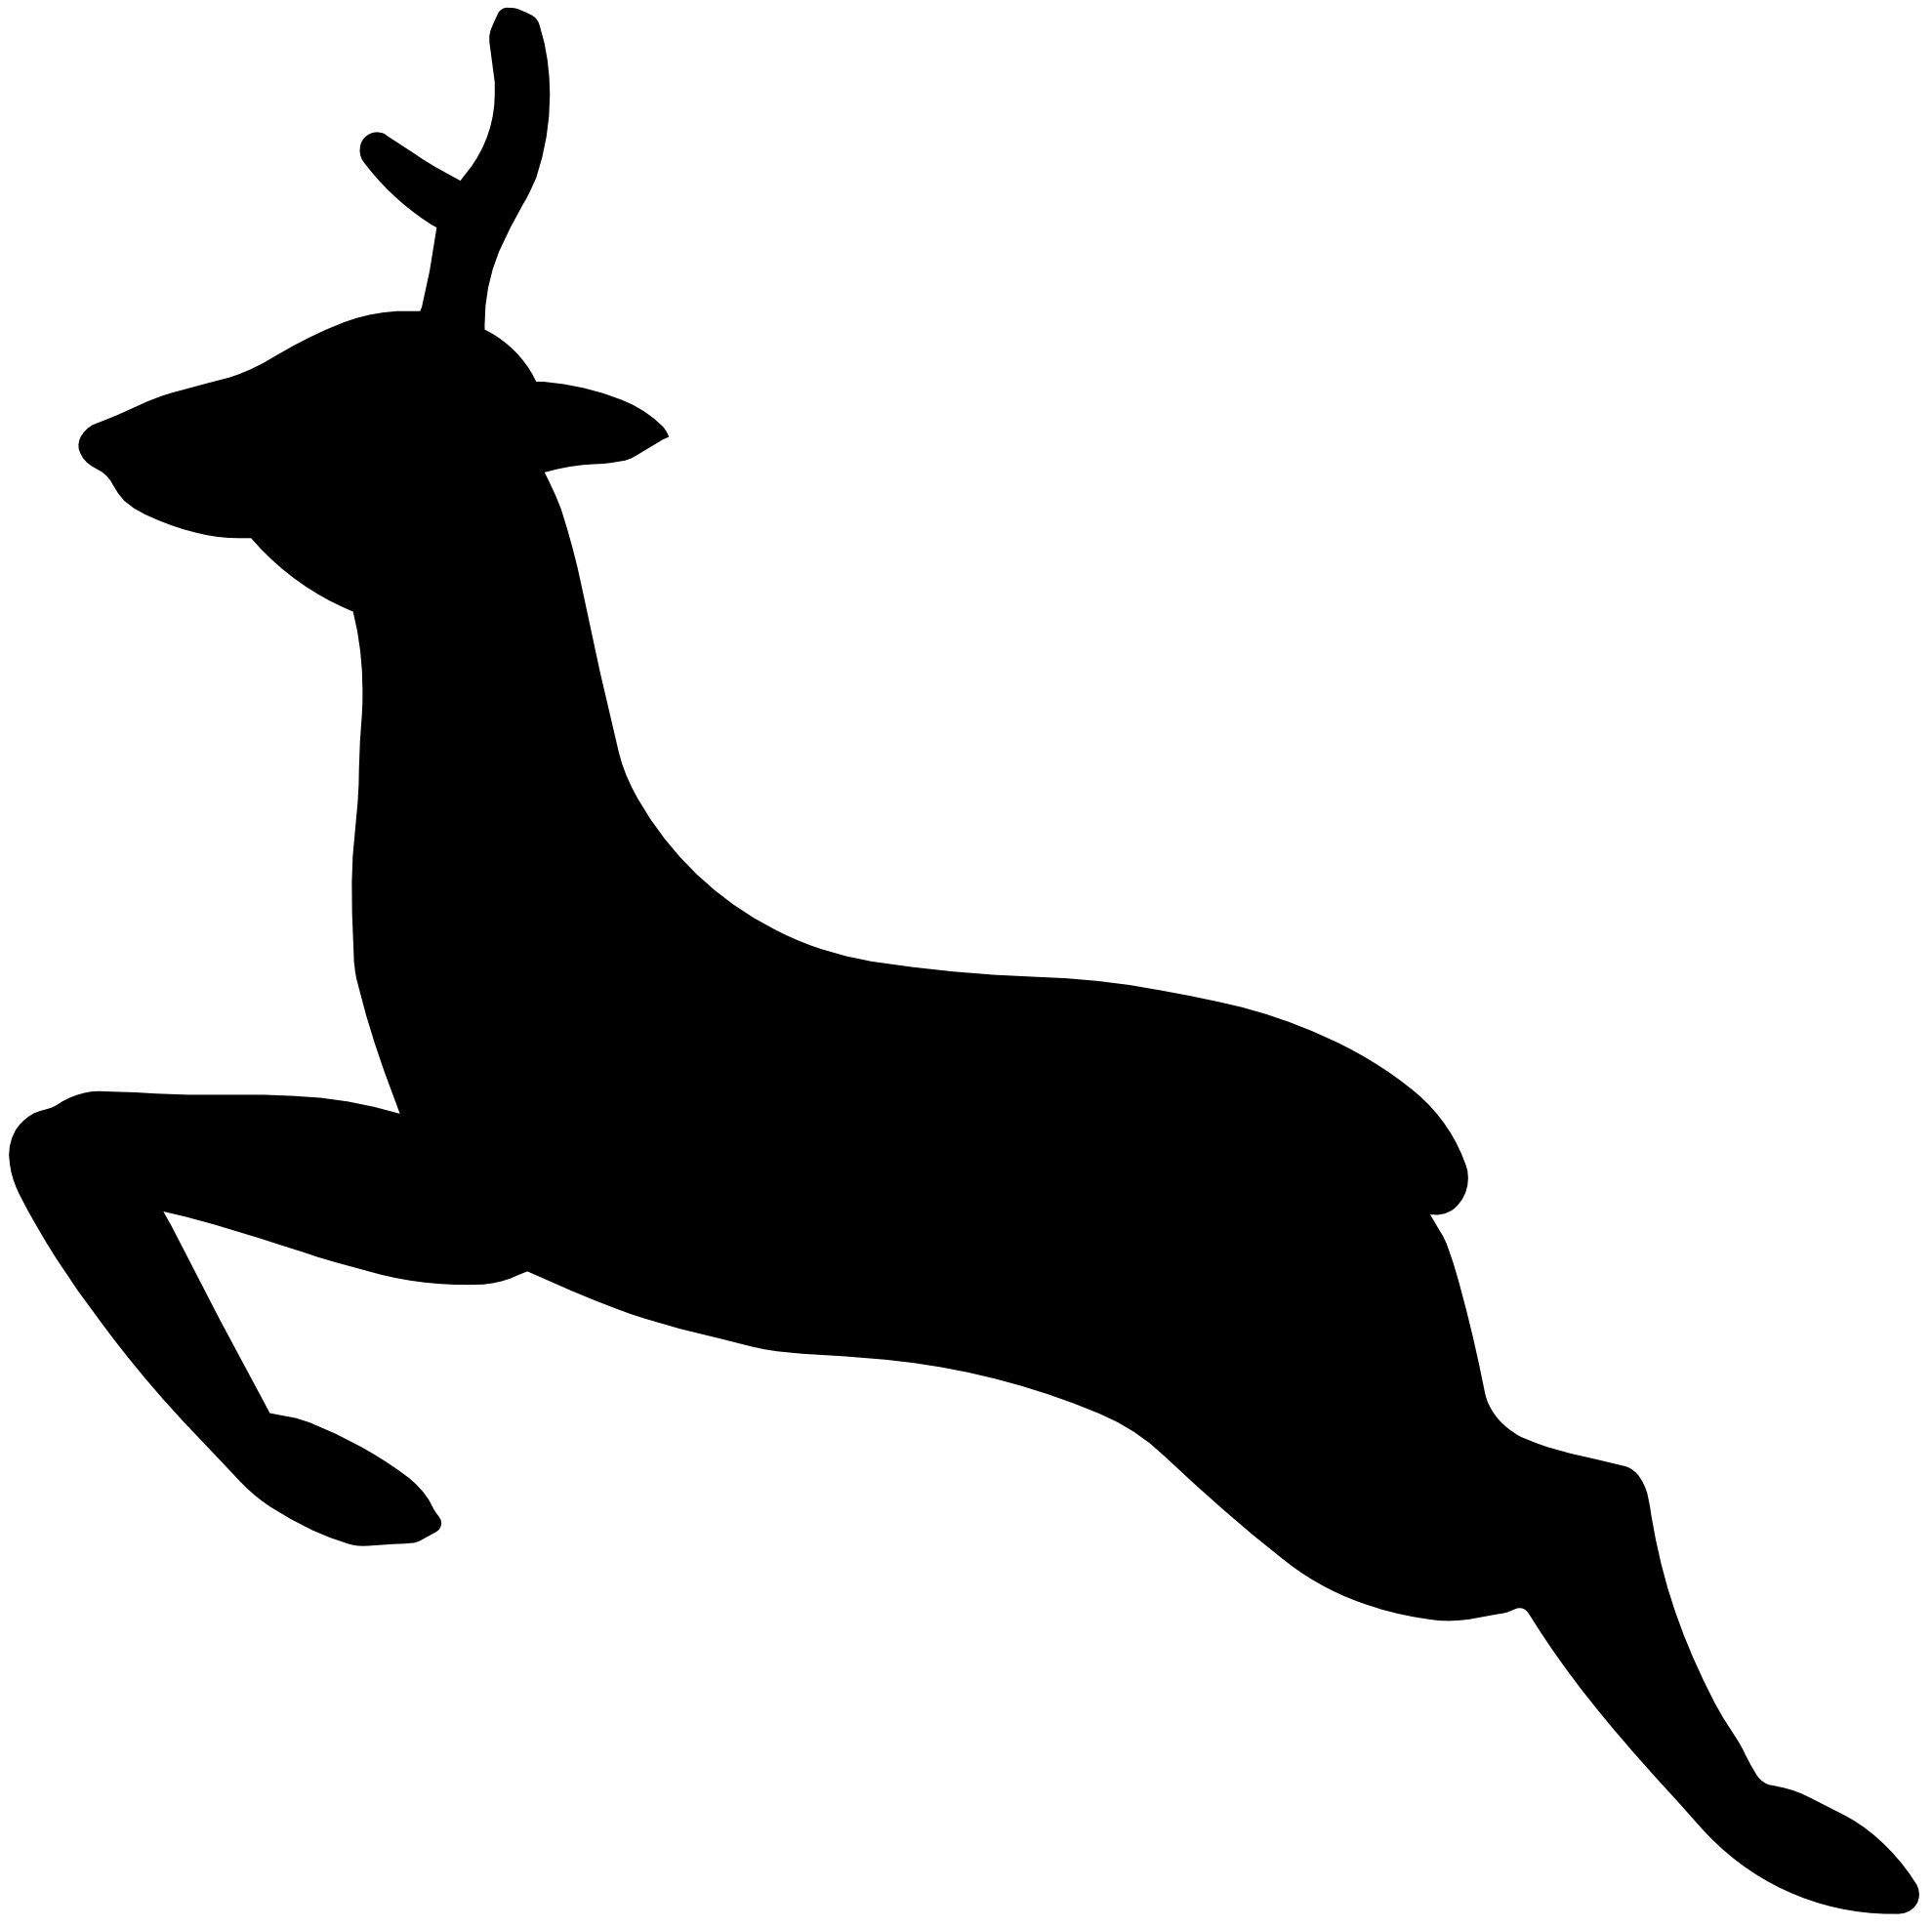 deer%20clipart%20black%20and%20white